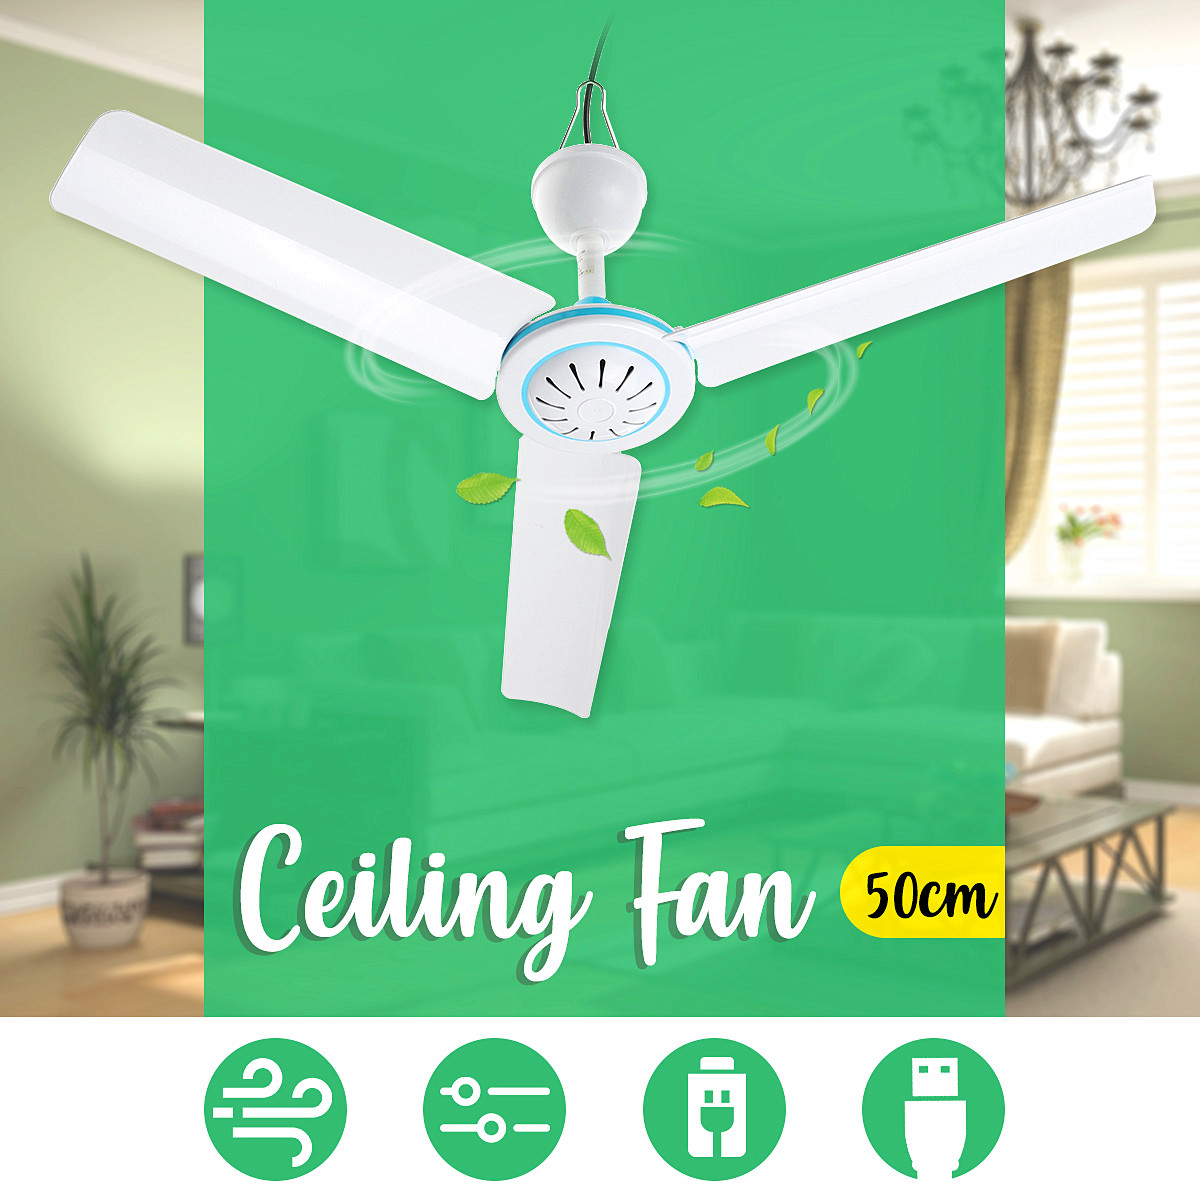 20 Inch 12V 6W Mini Electric Ceiling Fan Fans USB Home Air Conditioner Cooler Fans Li-ion for Dormitory Summer Outdoor 3 Blades20 Inch 12V 6W Mini Electric Ceiling Fan Fans USB Home Air Conditioner Cooler Fans Li-ion for Dormitory Summer Outdoor 3 Blades